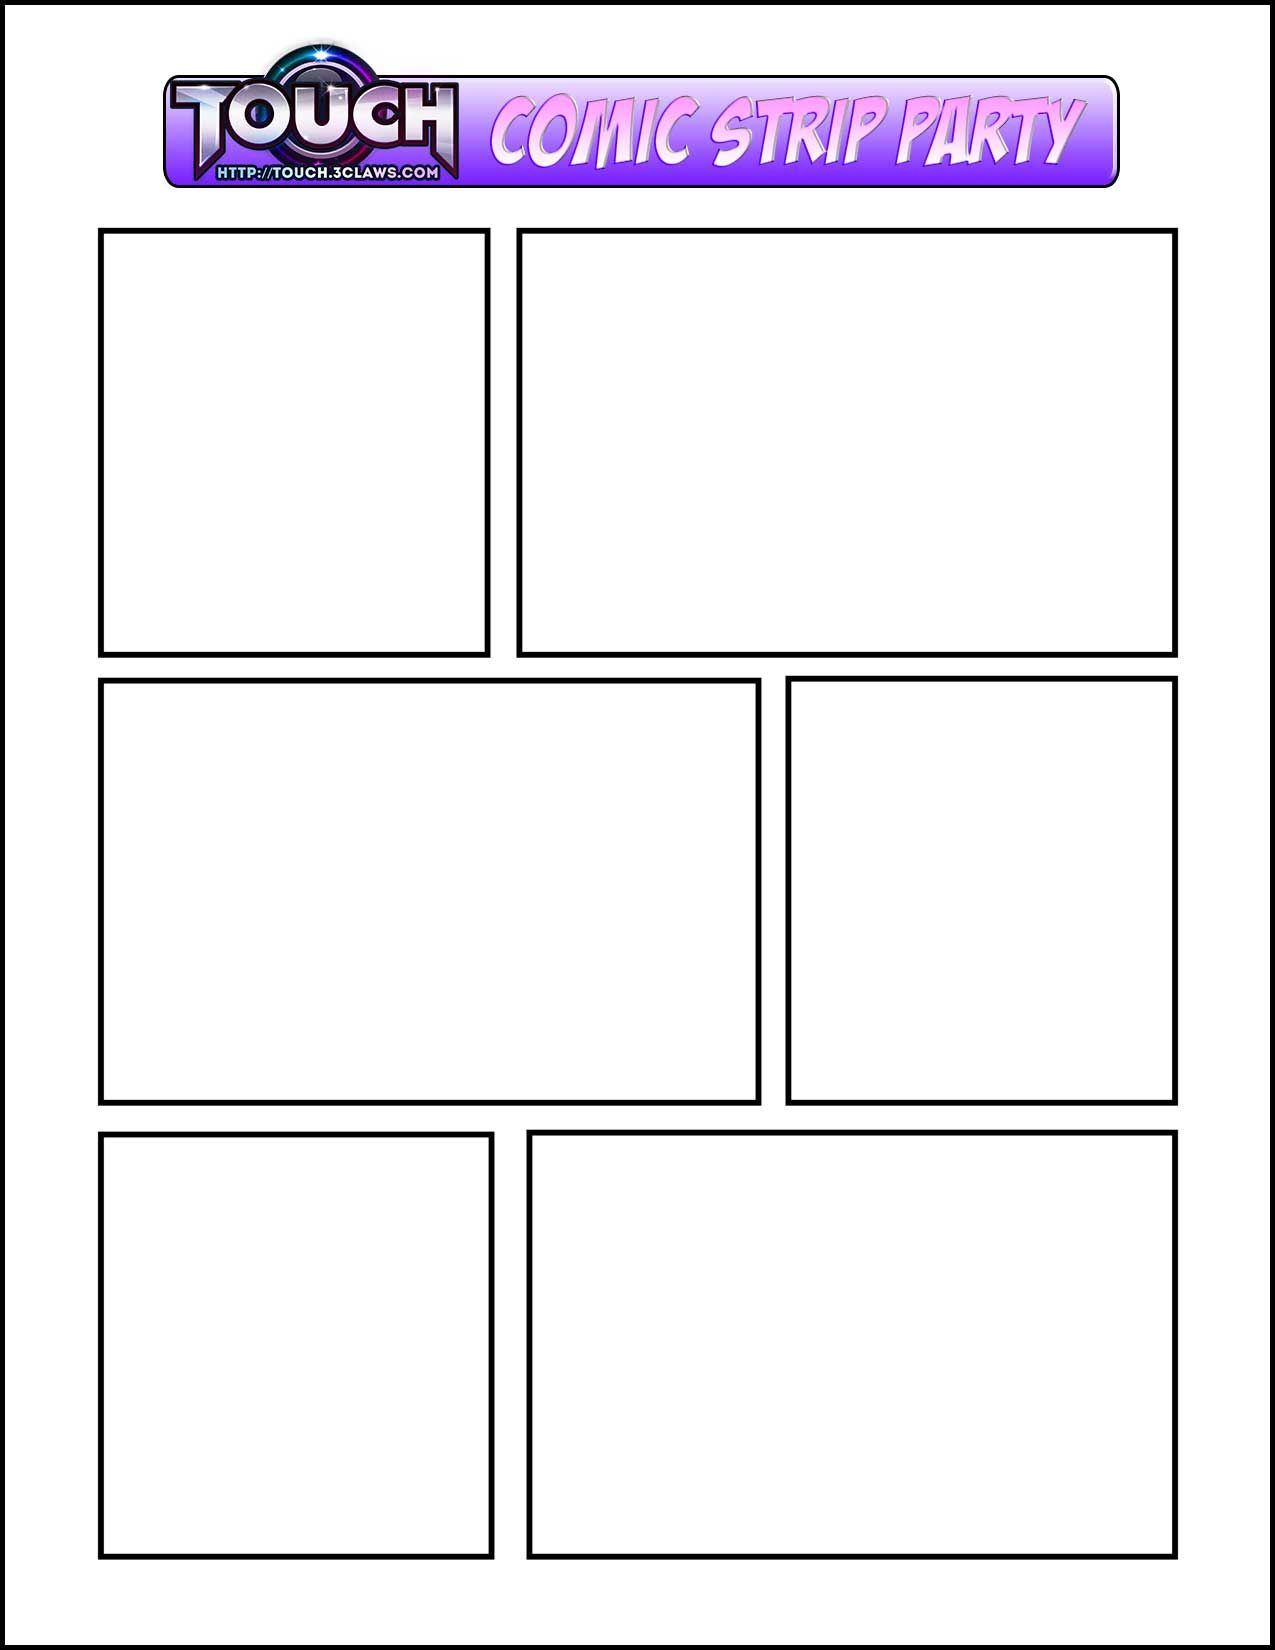 TC ComicStripTemplate  Ideas For The House    Comic